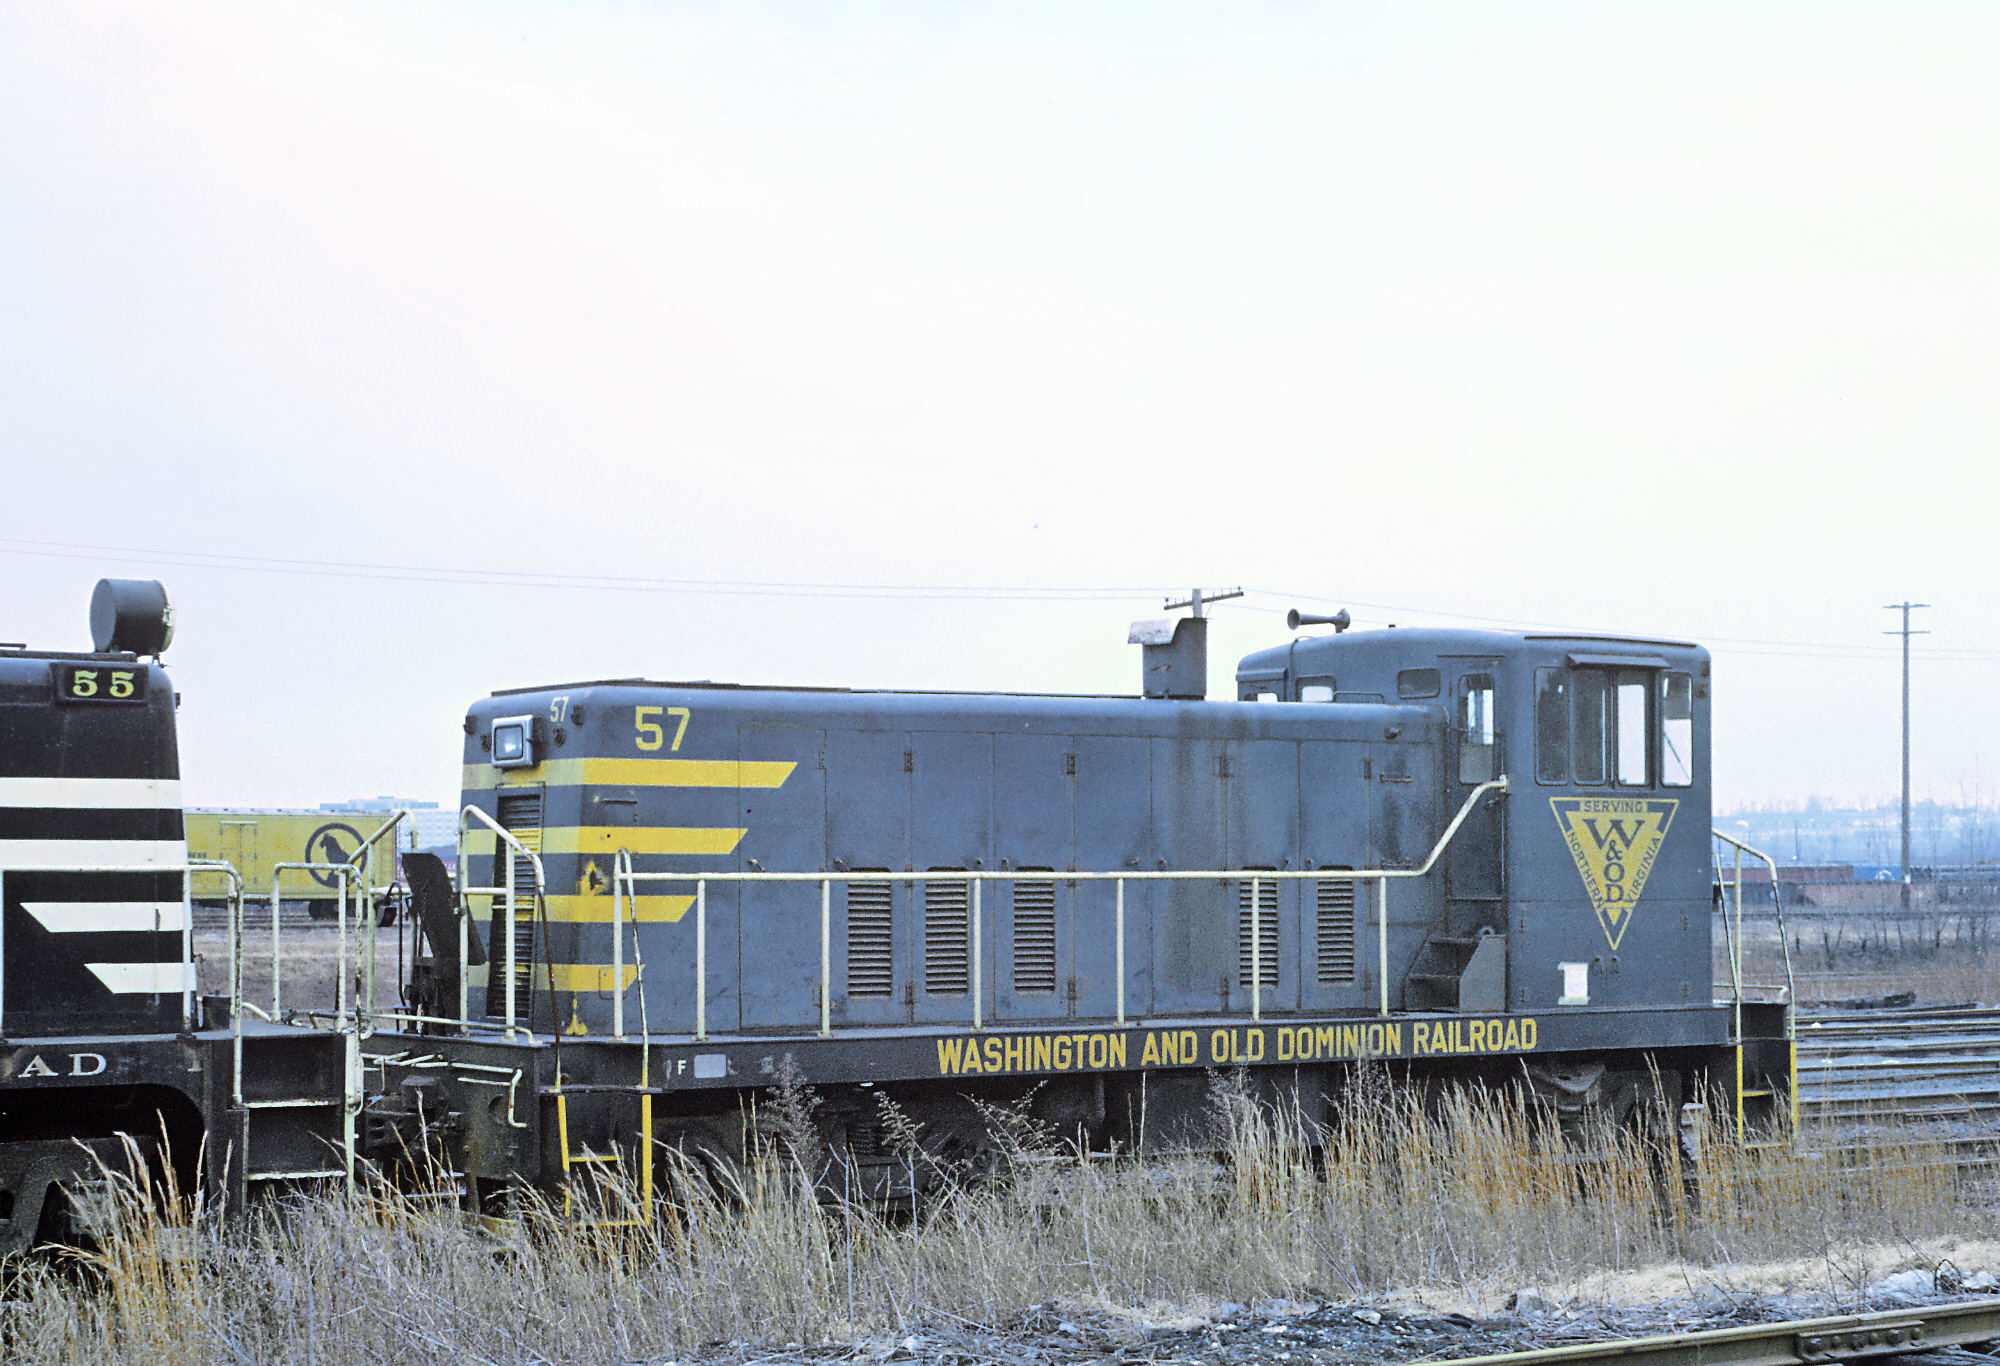 Washington and Old Dominion Railroad